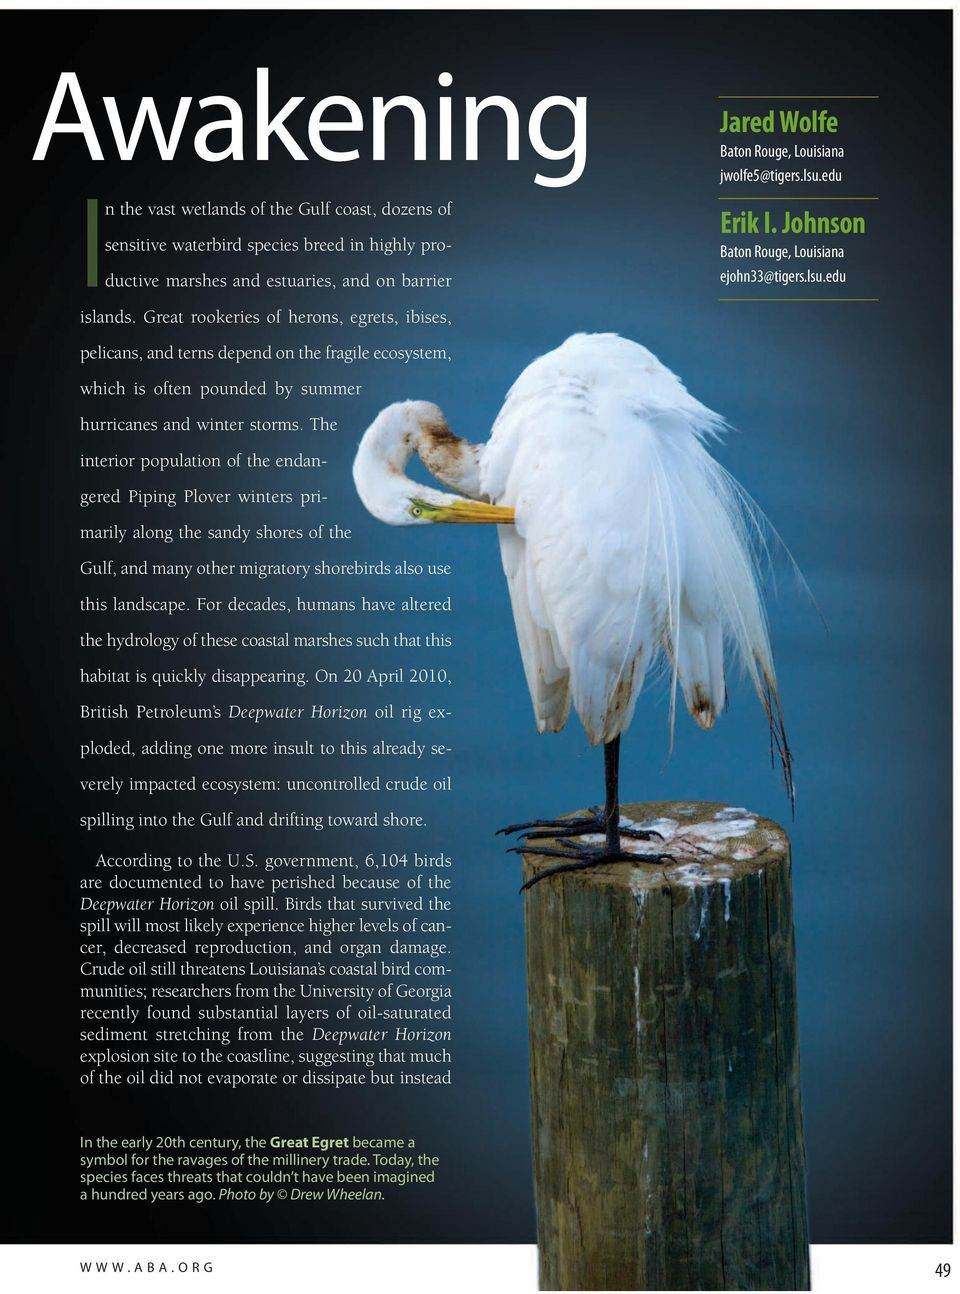 Great rookeries of herons, egrets, ibises, pelicans, and terns depend on the fragile ecosystem, which is often pounded by summer hurricanes and winter storms.